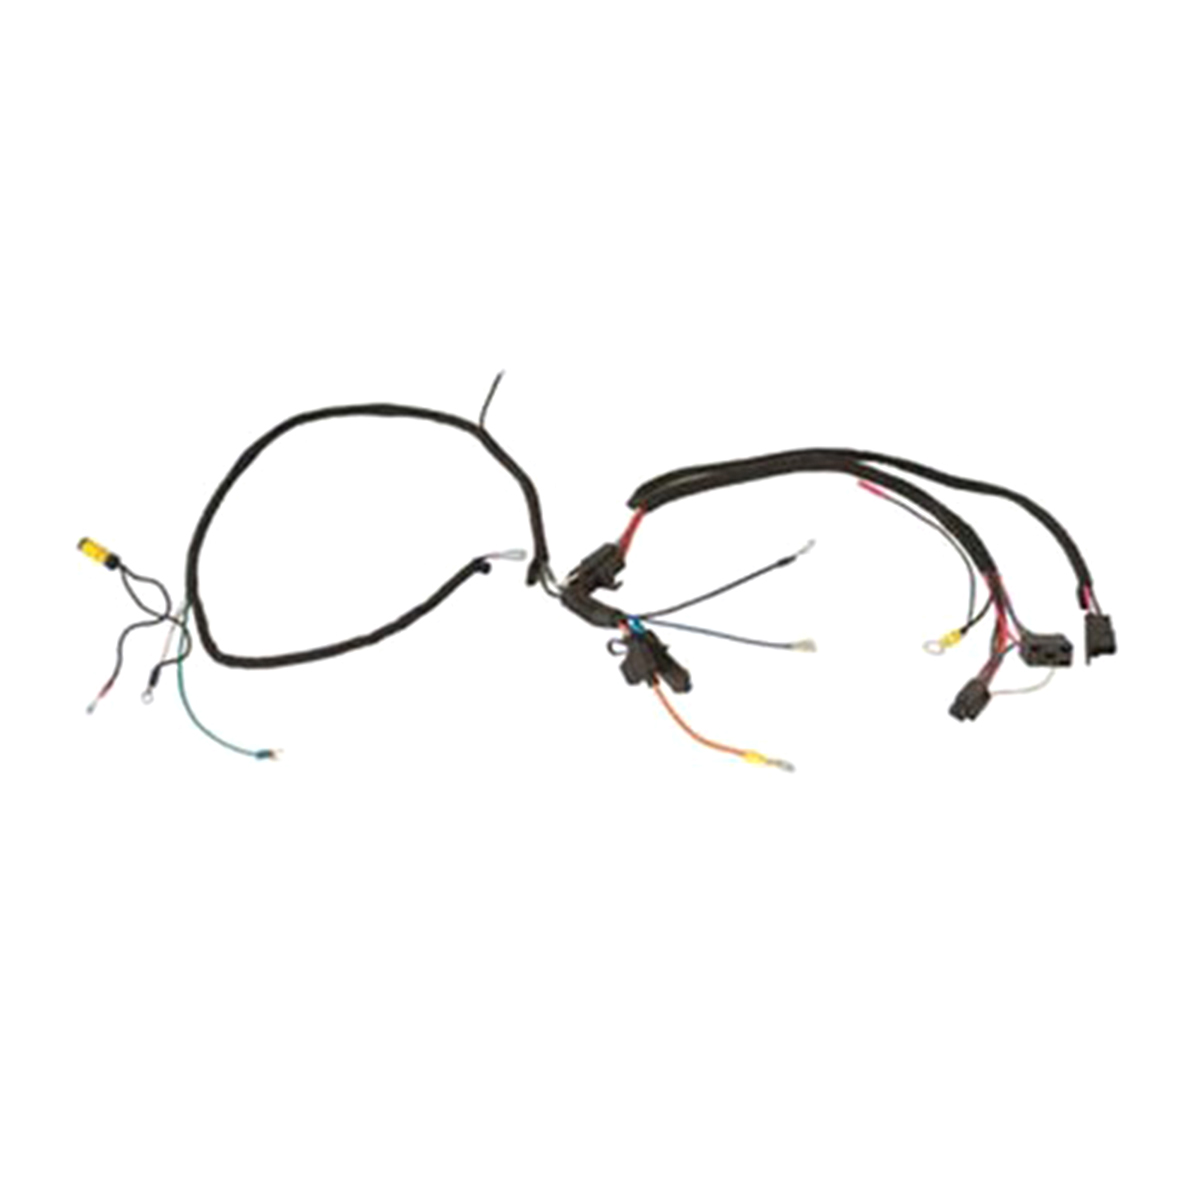 500028 Dixie Chopper Run-Behind Wiring Harness